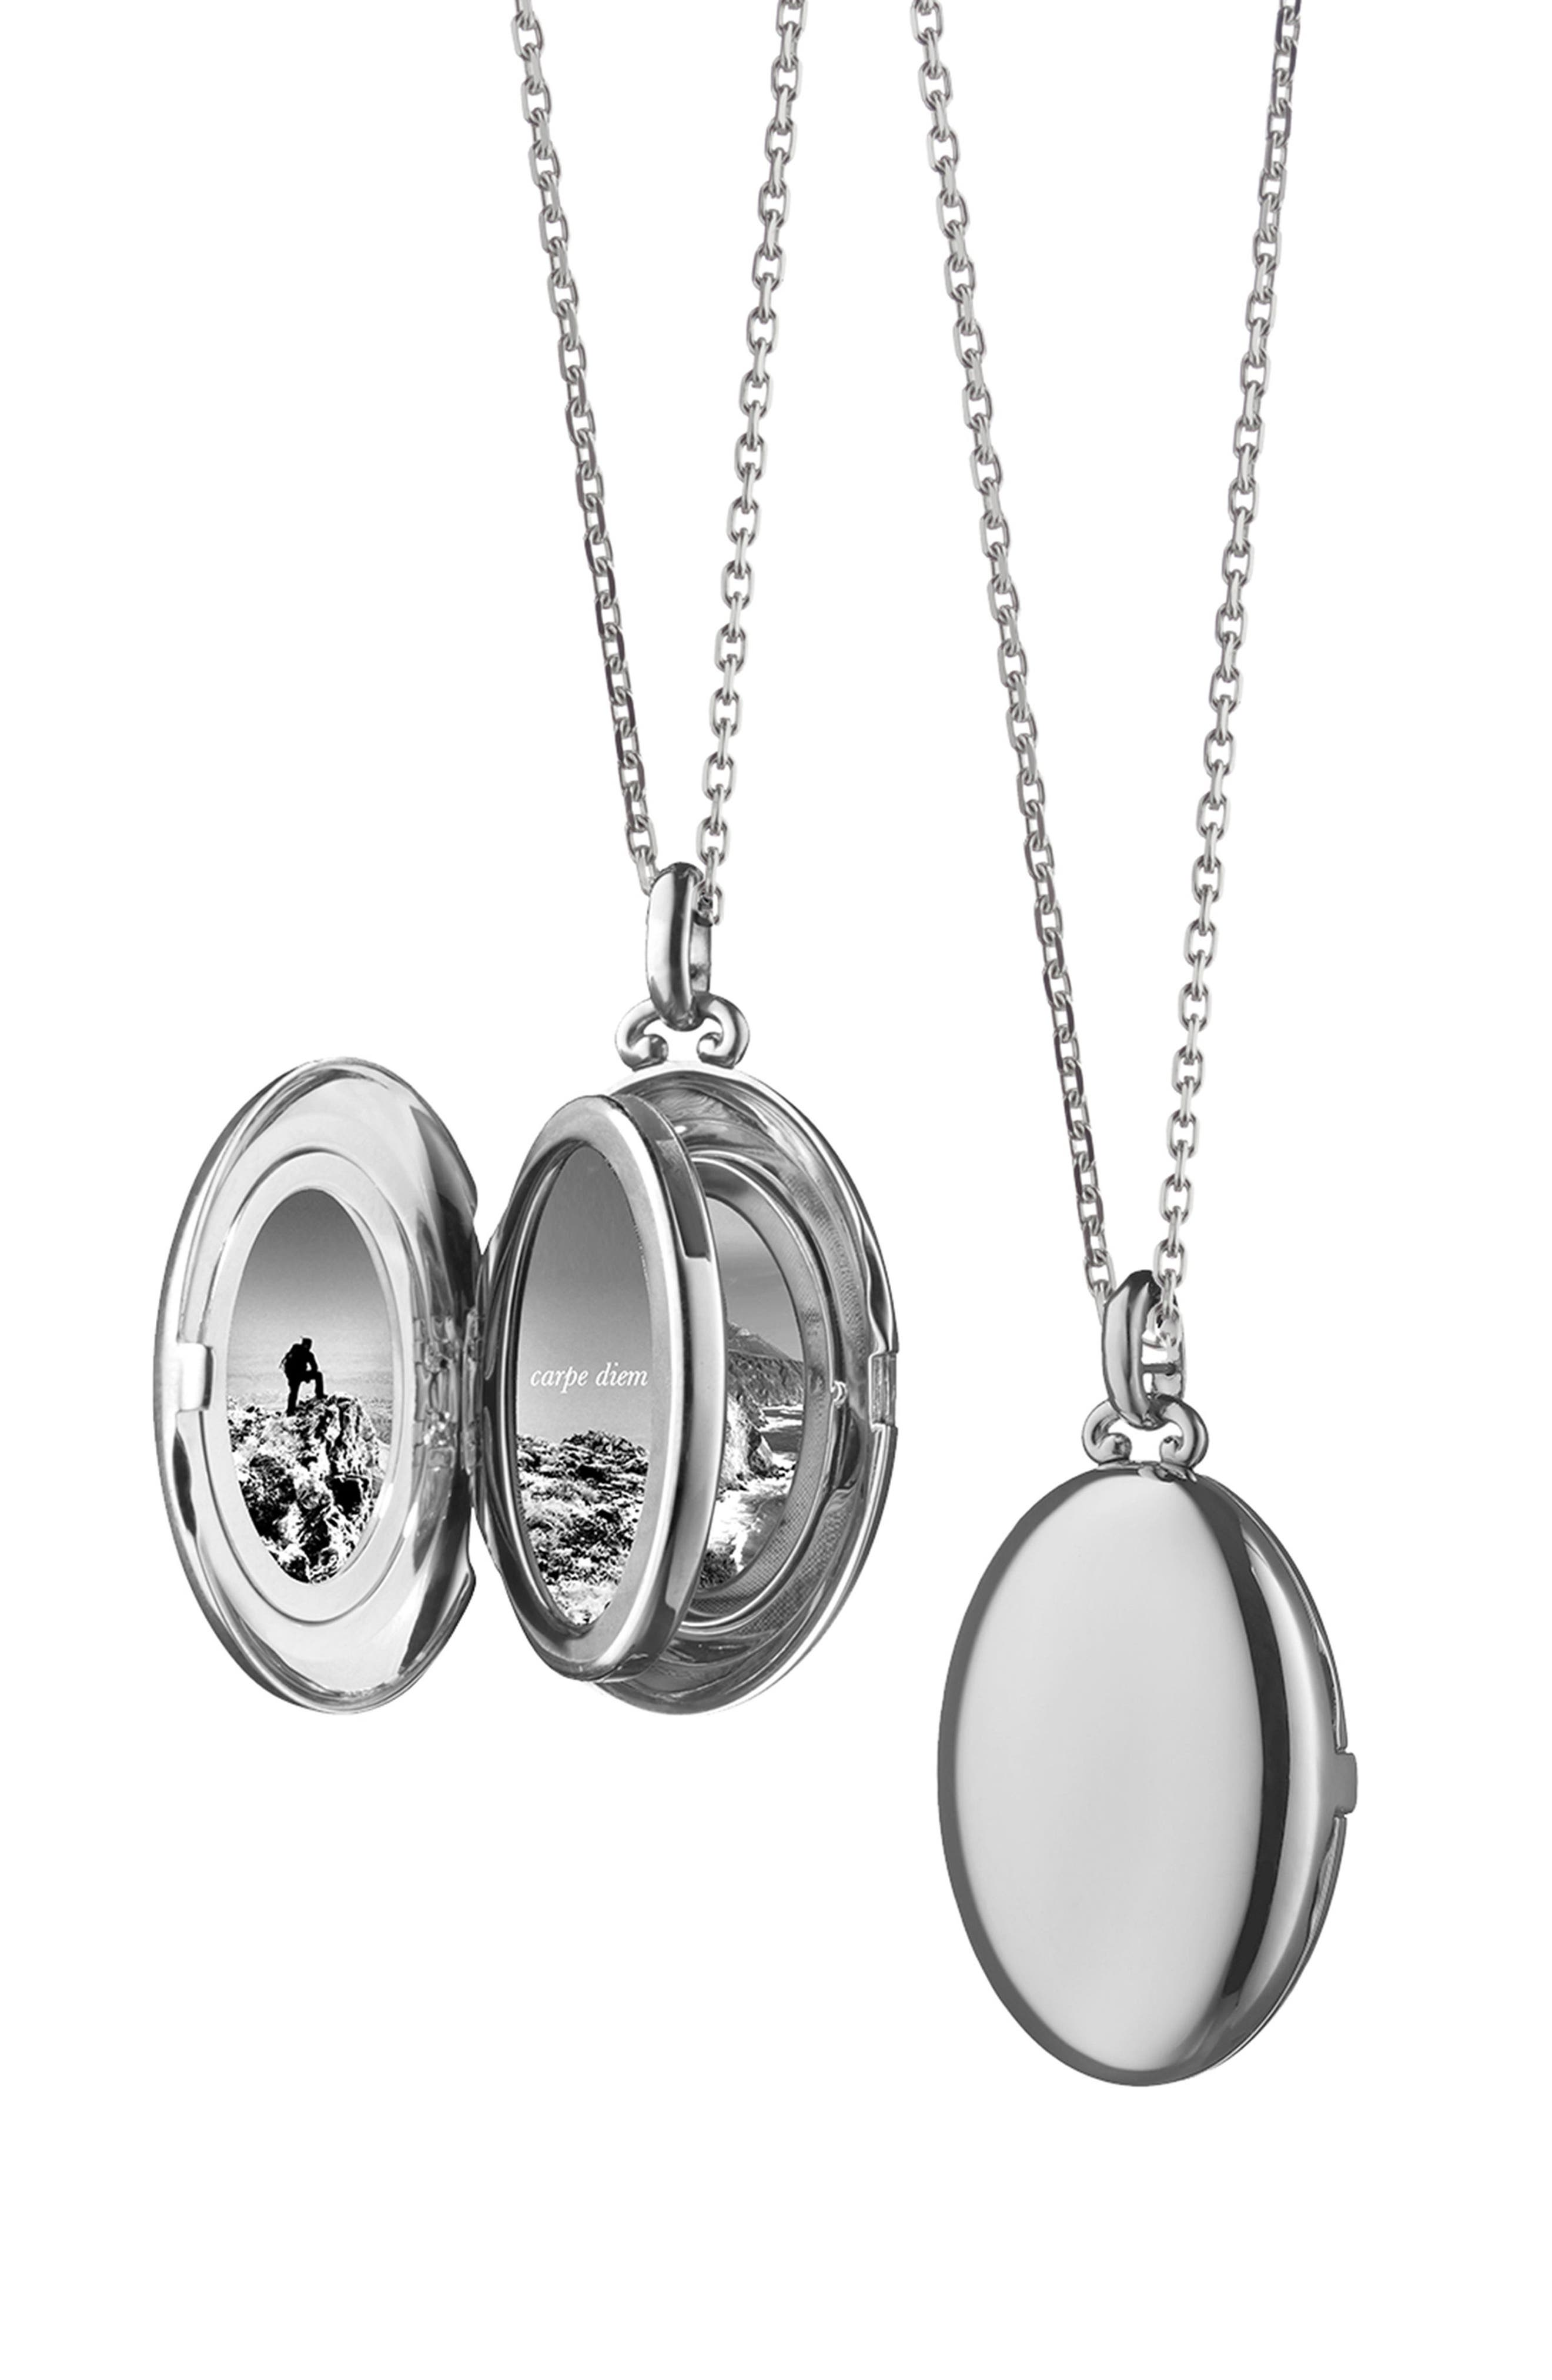 Four Image Mini Locket Necklace,                         Main,                         color, Sterling Silver